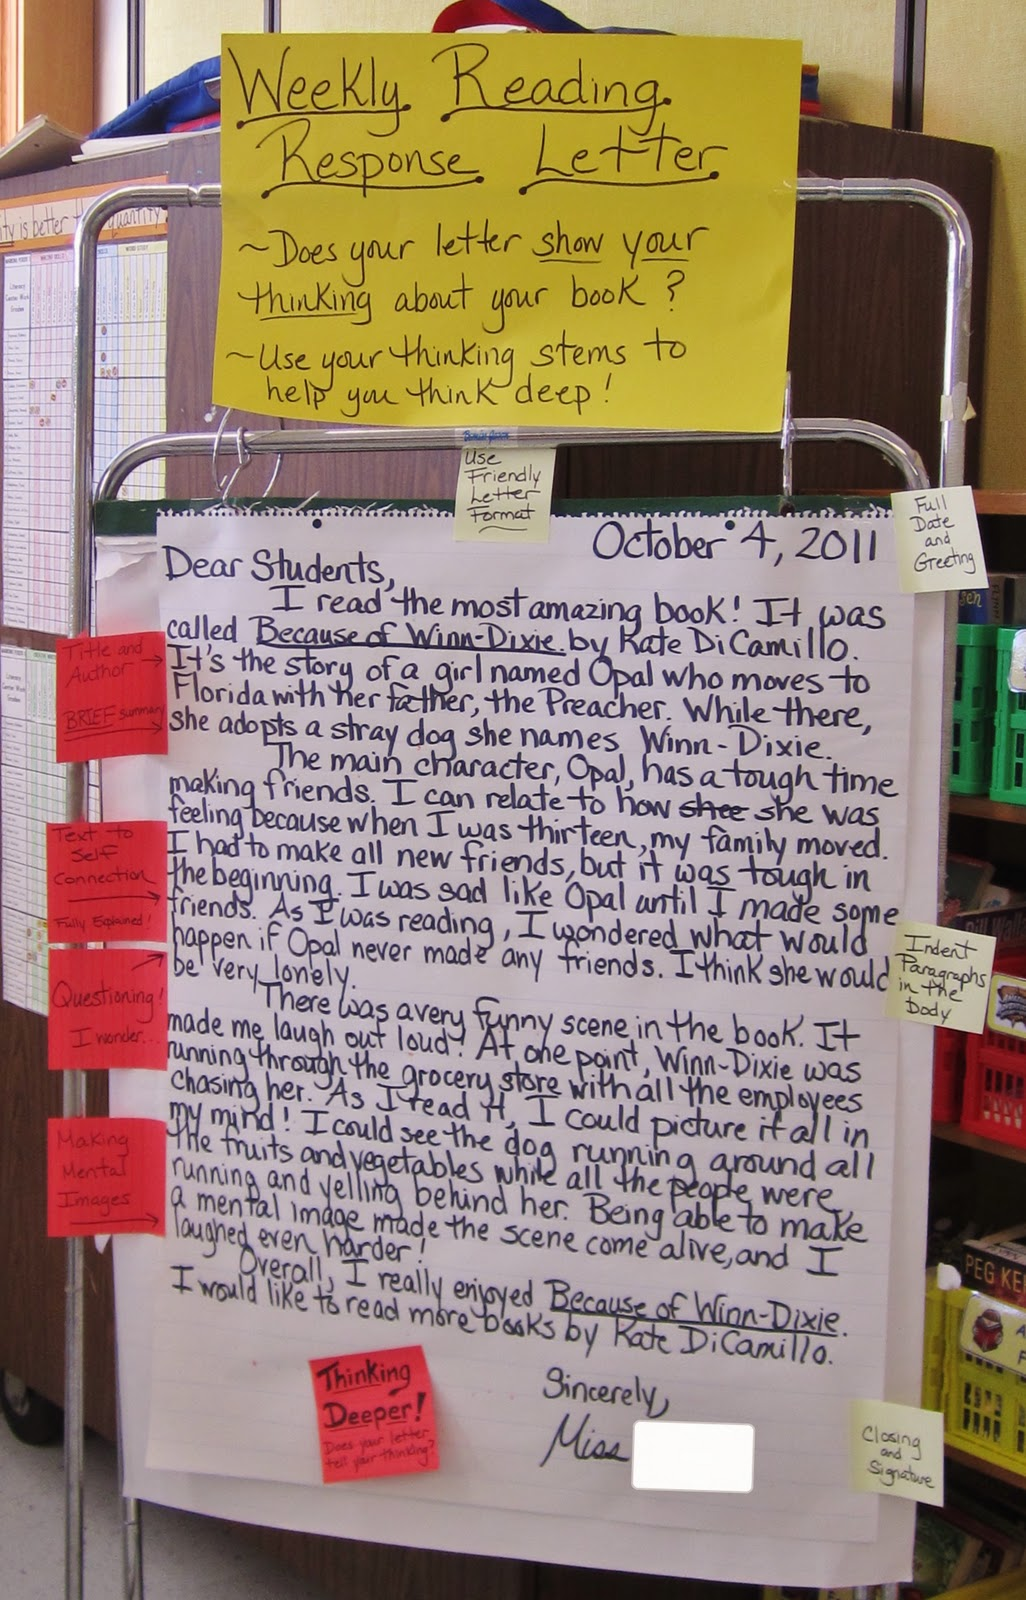 Teaching my friends weekly reading response letters part 1 i put up the letter and read it to the class then we discuss basics did i use friendly letter format lets review the parts those are what the yellow spiritdancerdesigns Gallery